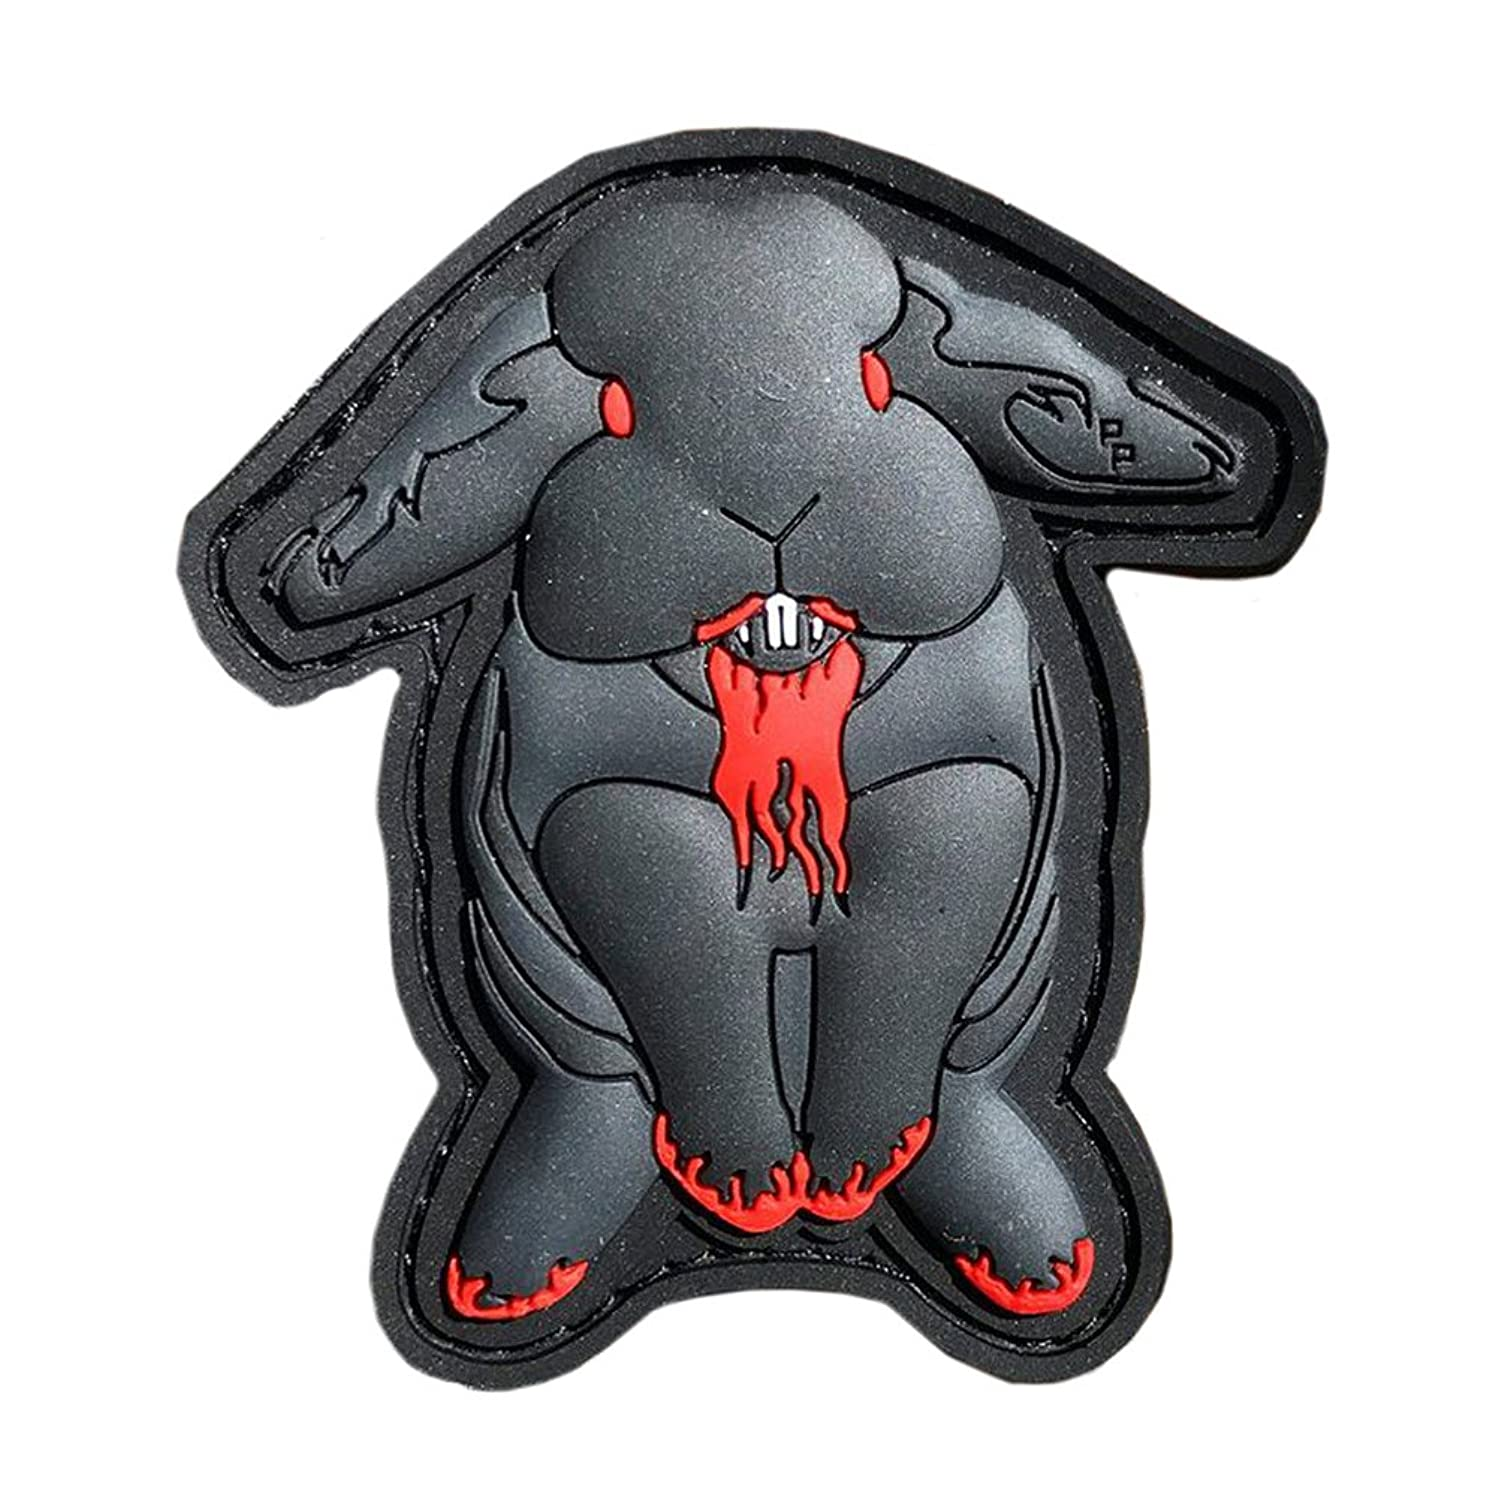 Patch Panel Evil Bunny PVC Morale Patch - with Hook and Loop Backing